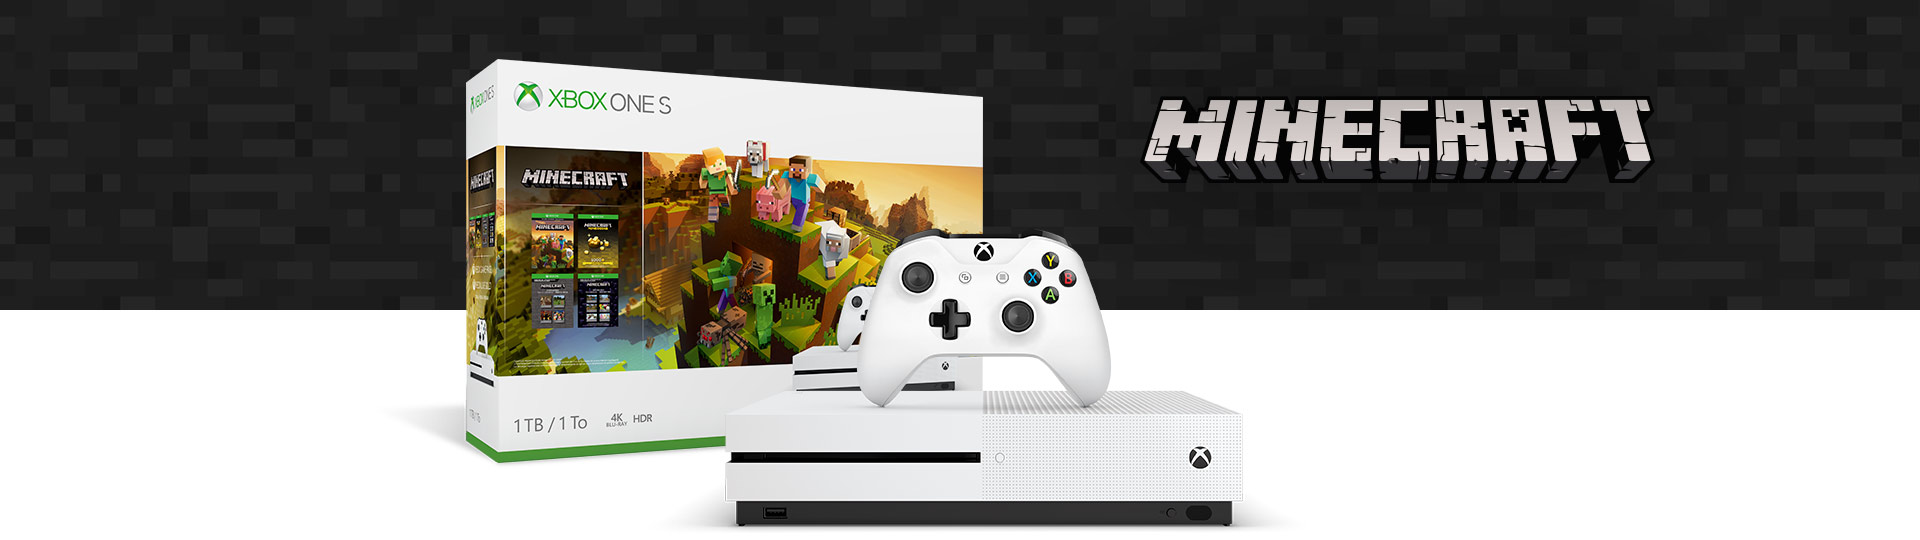 Front view of Xbox One S Minecraft Creators Bundle with product box